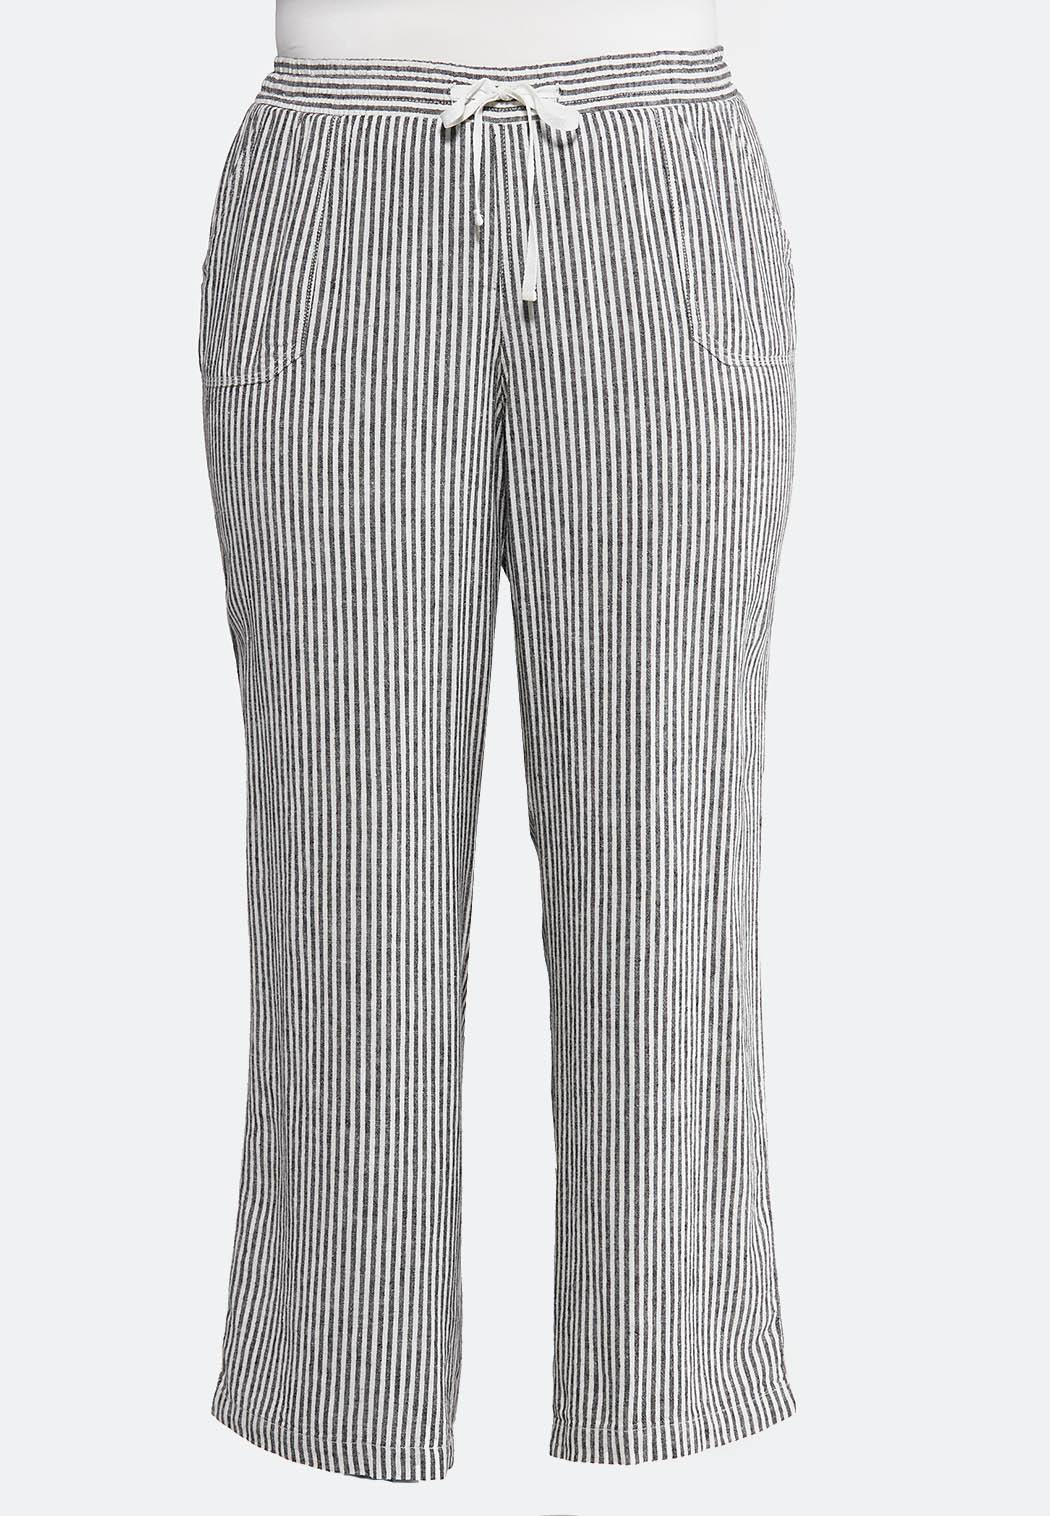 2dd5a4bdfd7 Plus Size Stripe Linen Beach Pants Pants Cato Fashions